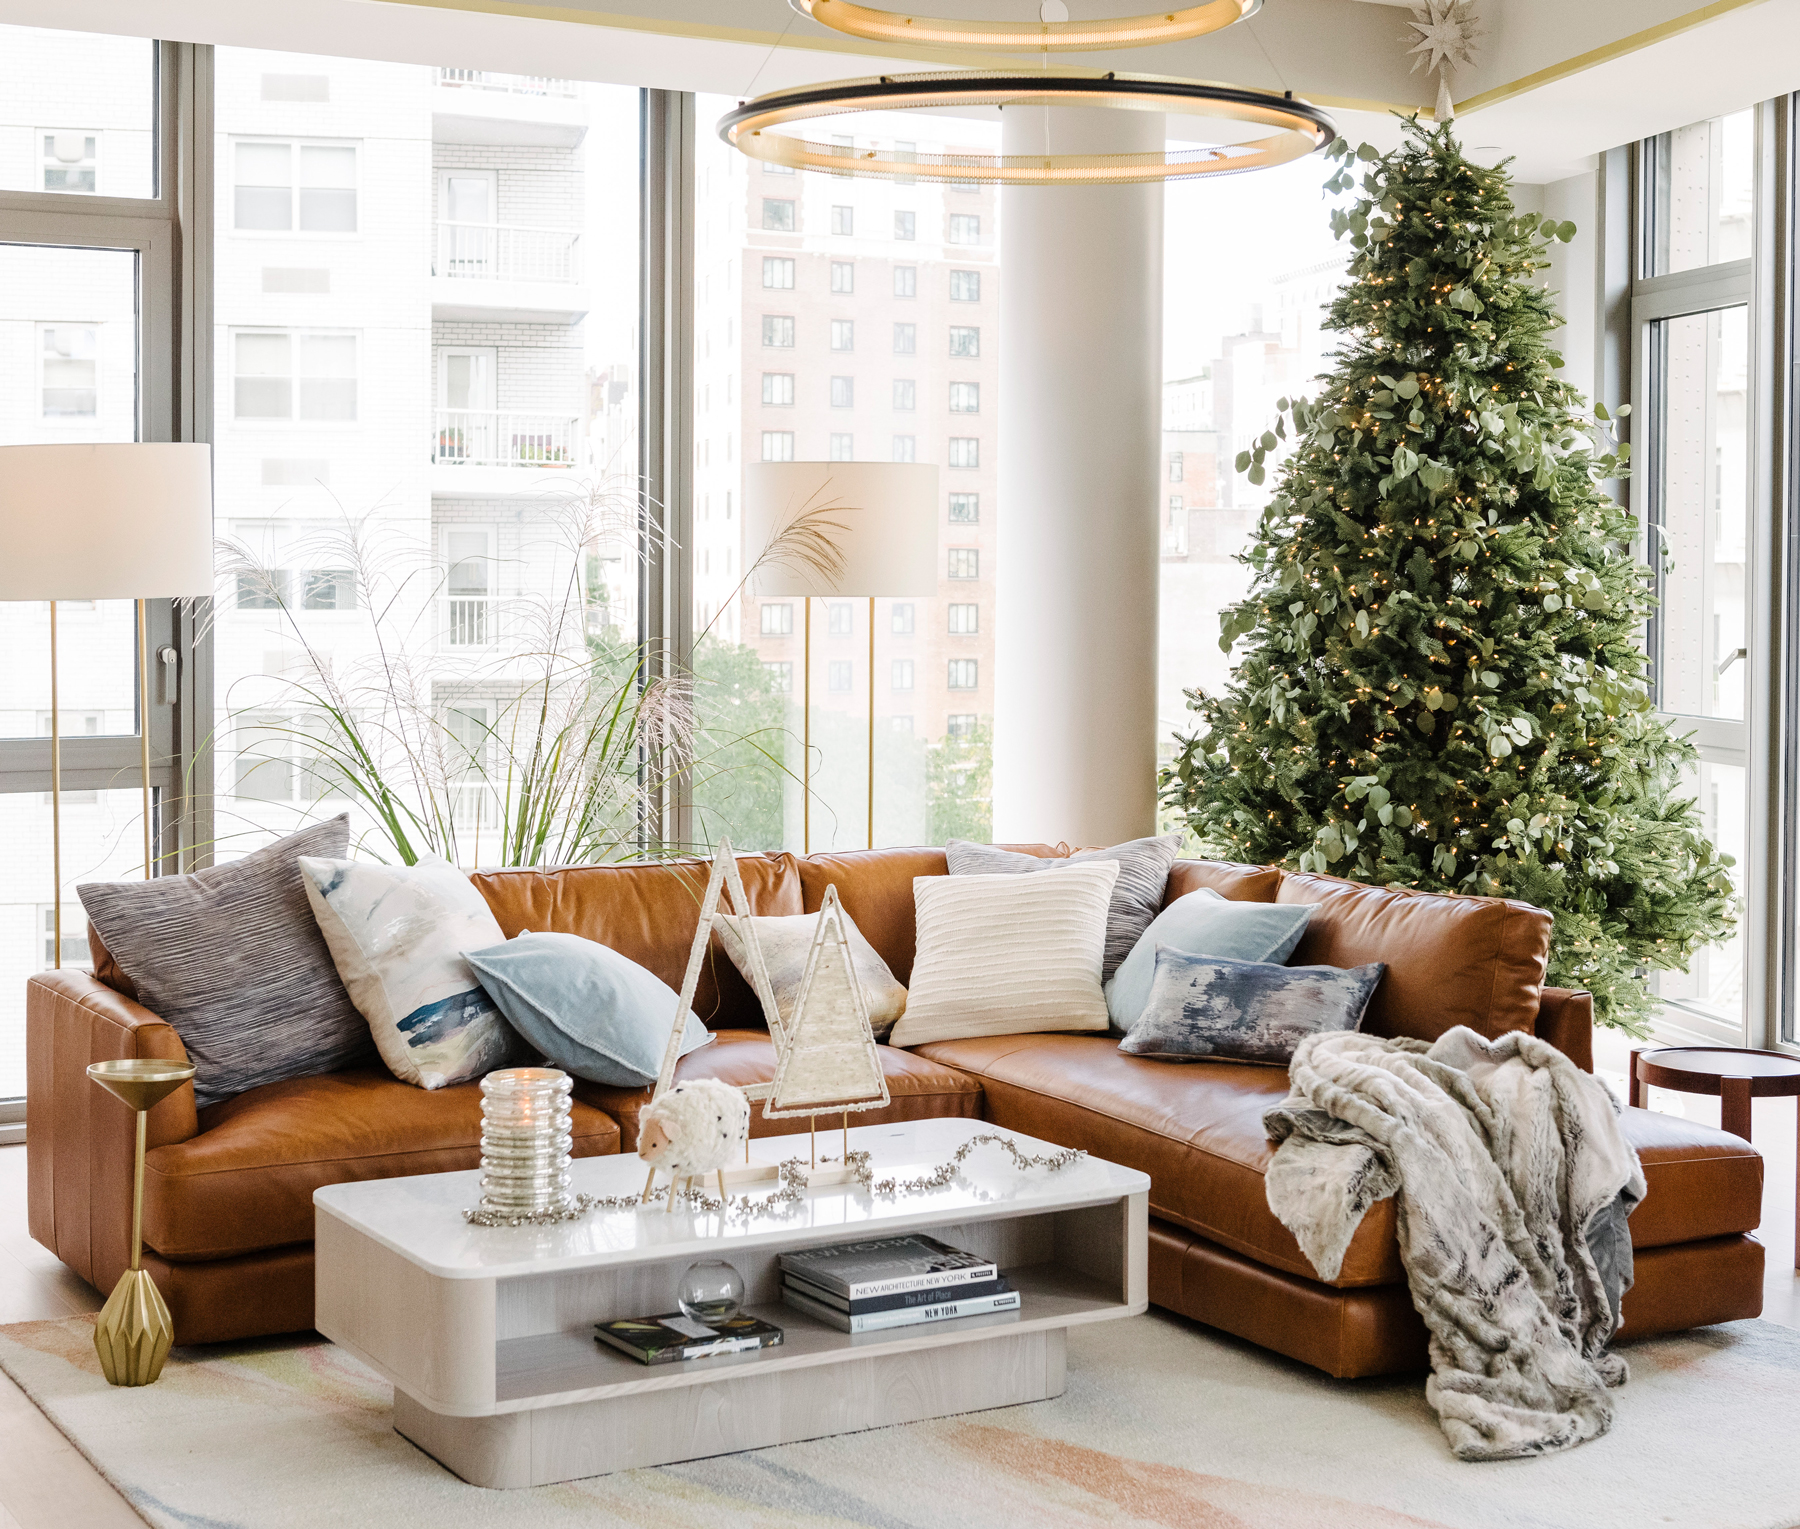 West Elm Holiday House decorating trends, ideas - Added foliage